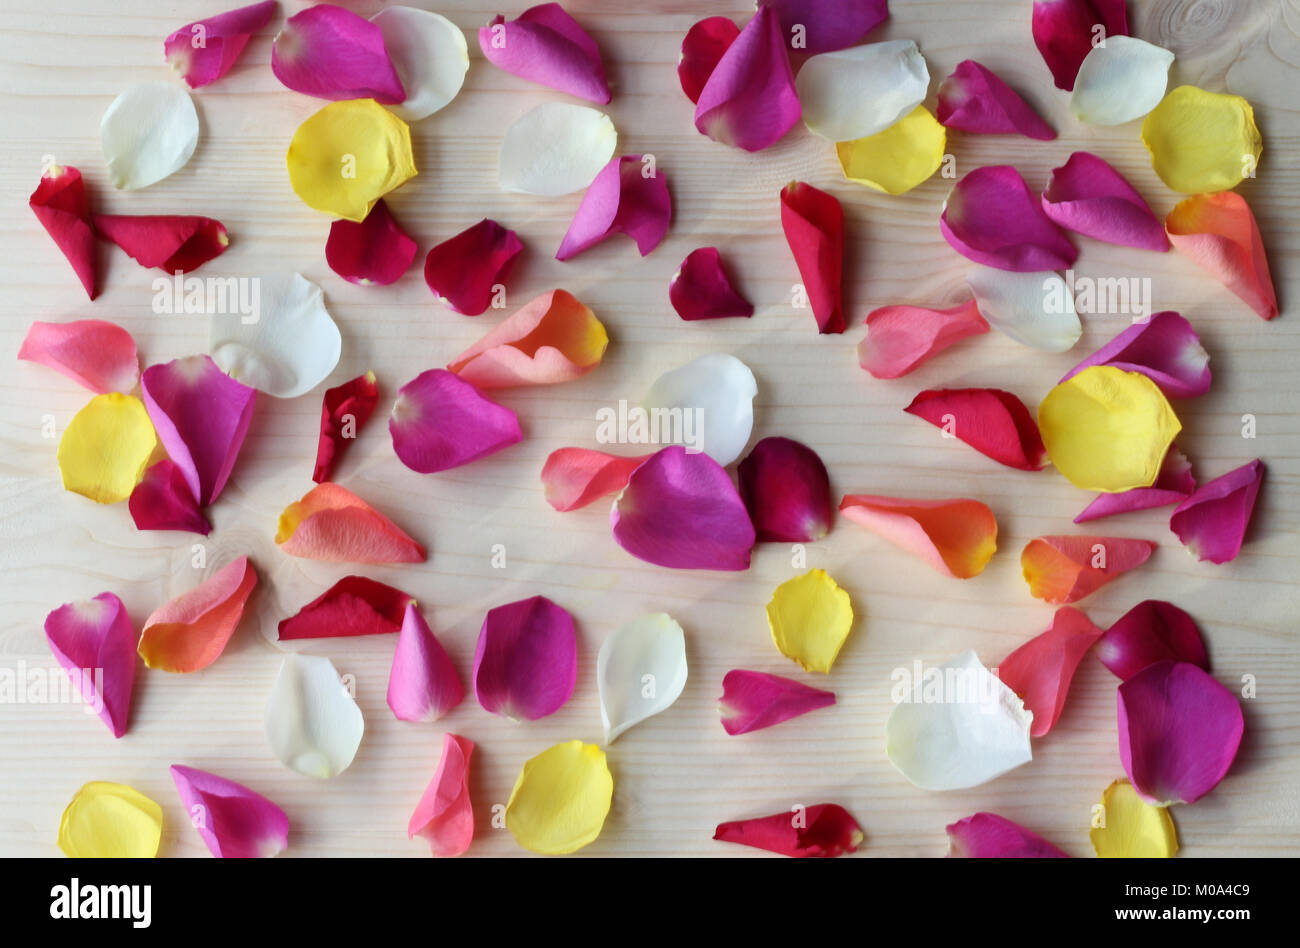 multi colored rose petals scattered on a bright wooden table Stock Photo